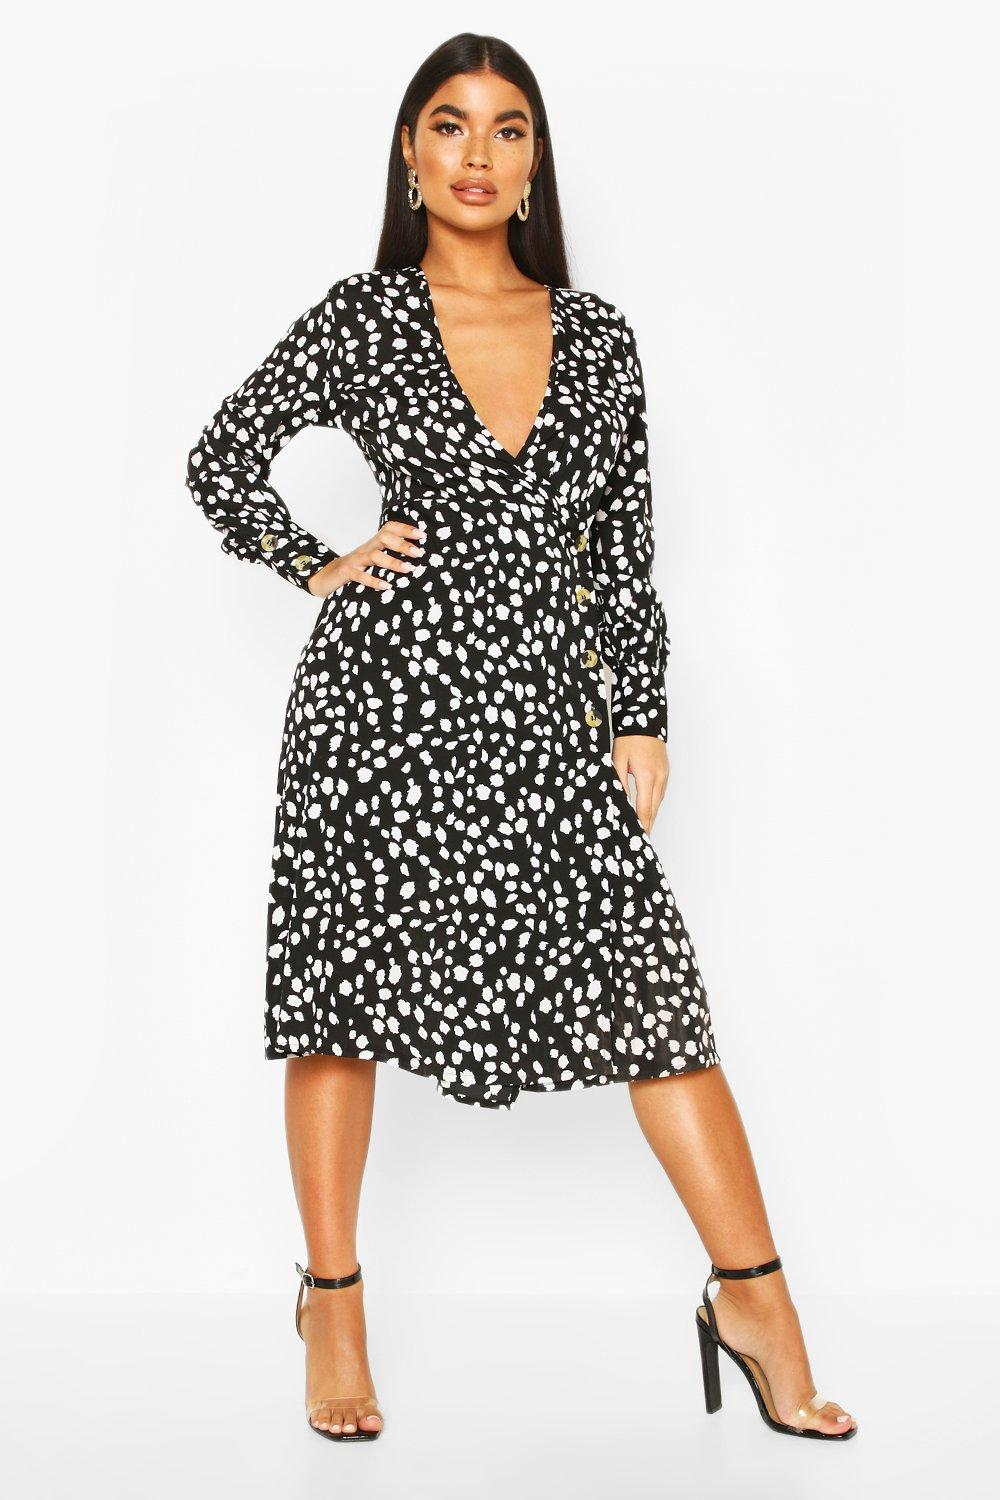 boohoo Womens Petite Red Dalmatian Print Button Midi Dress - Black - 12, Black